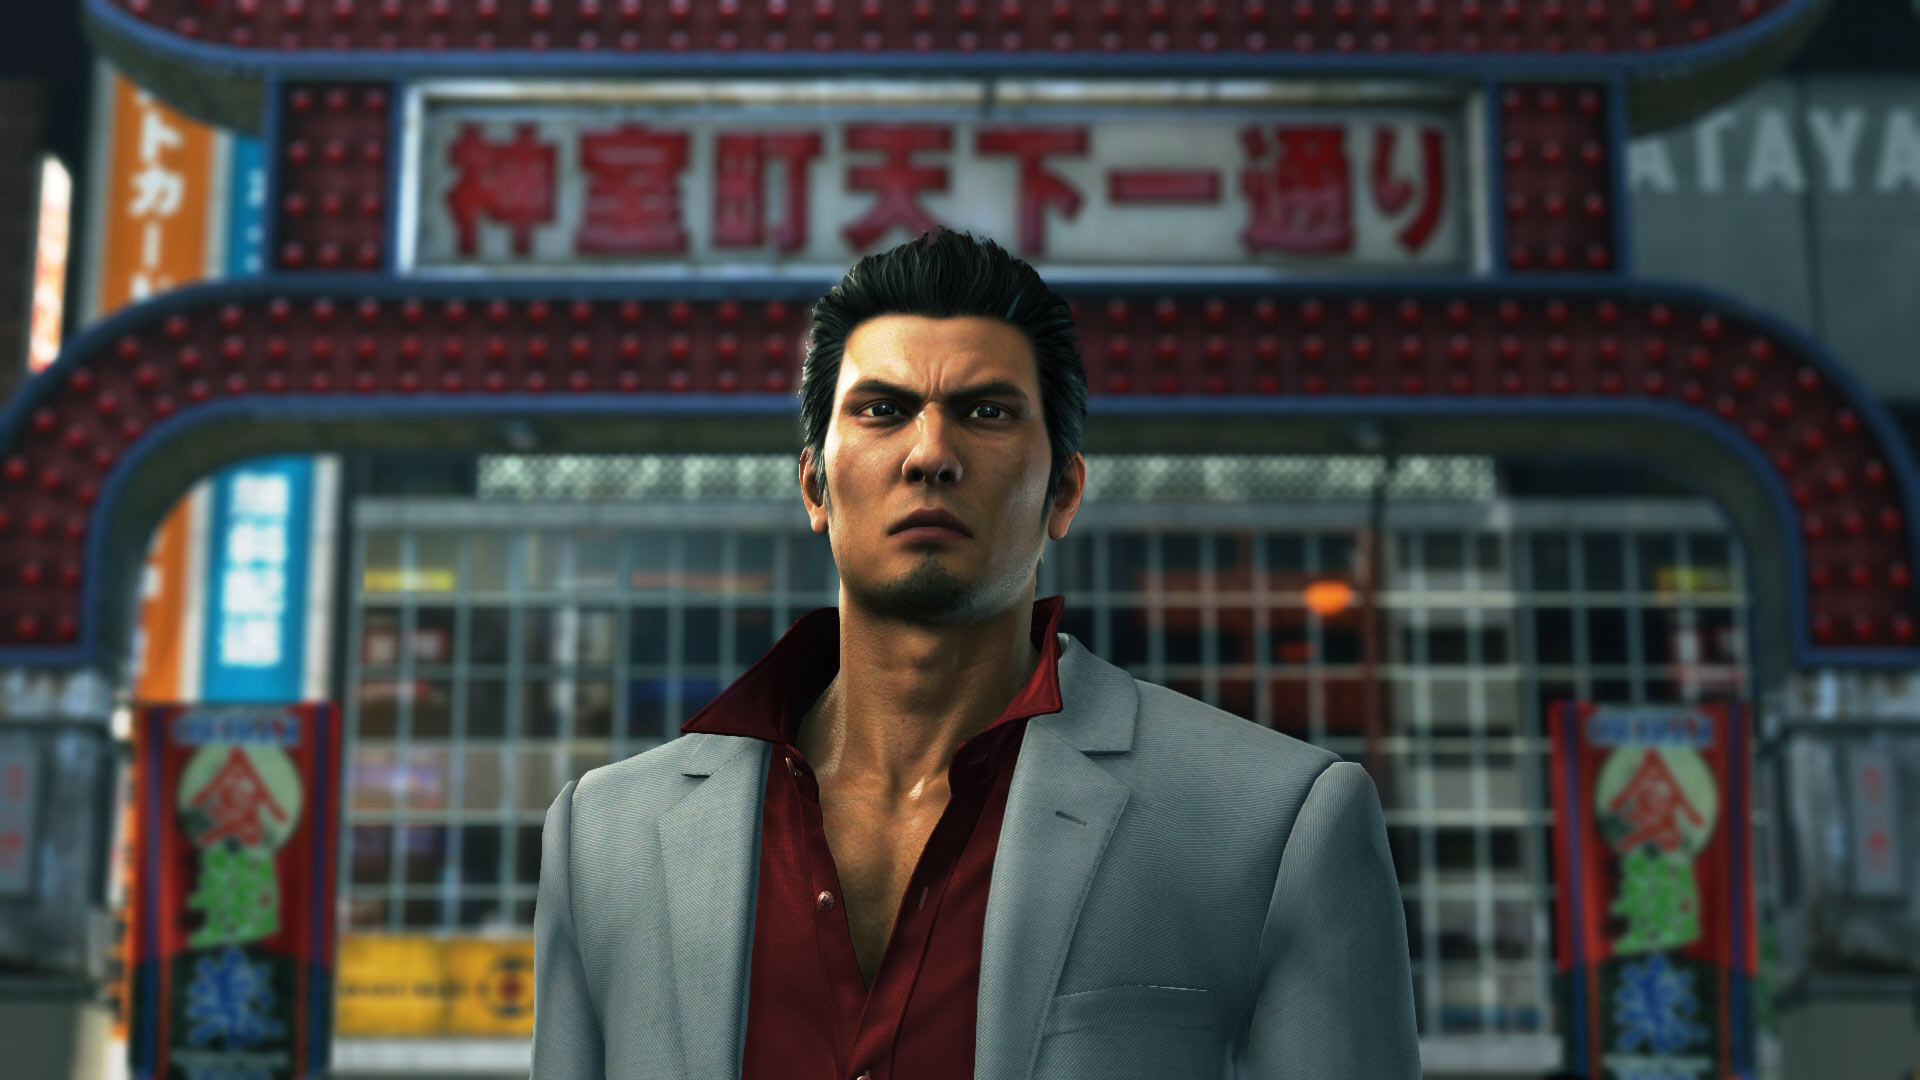 Yakuza 6: The Song of Life character